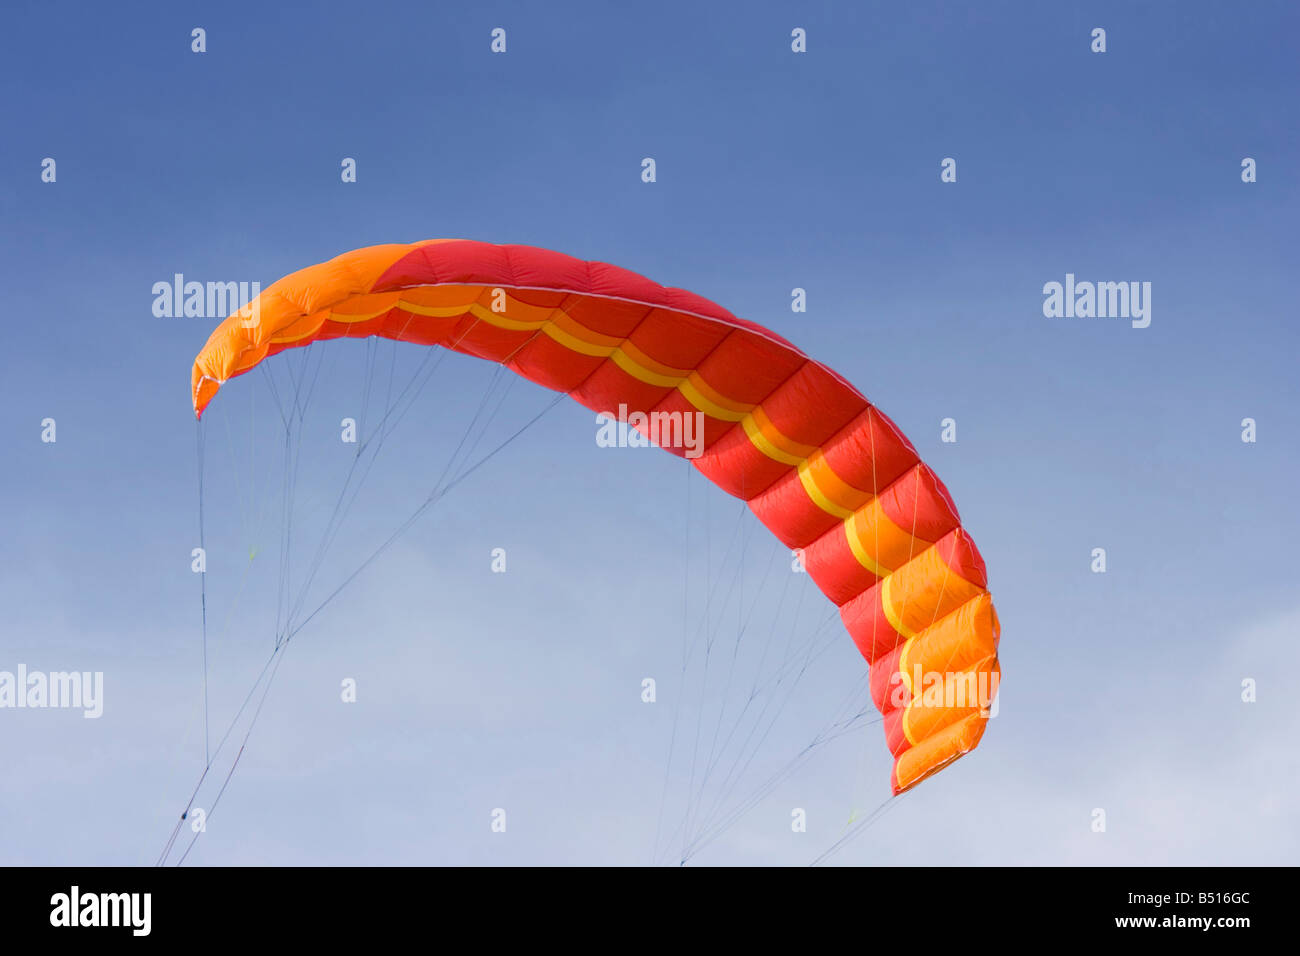 red power kite - this kite is a de-power foil and is used for buggying, land boarding or snowkiting - Stock Image